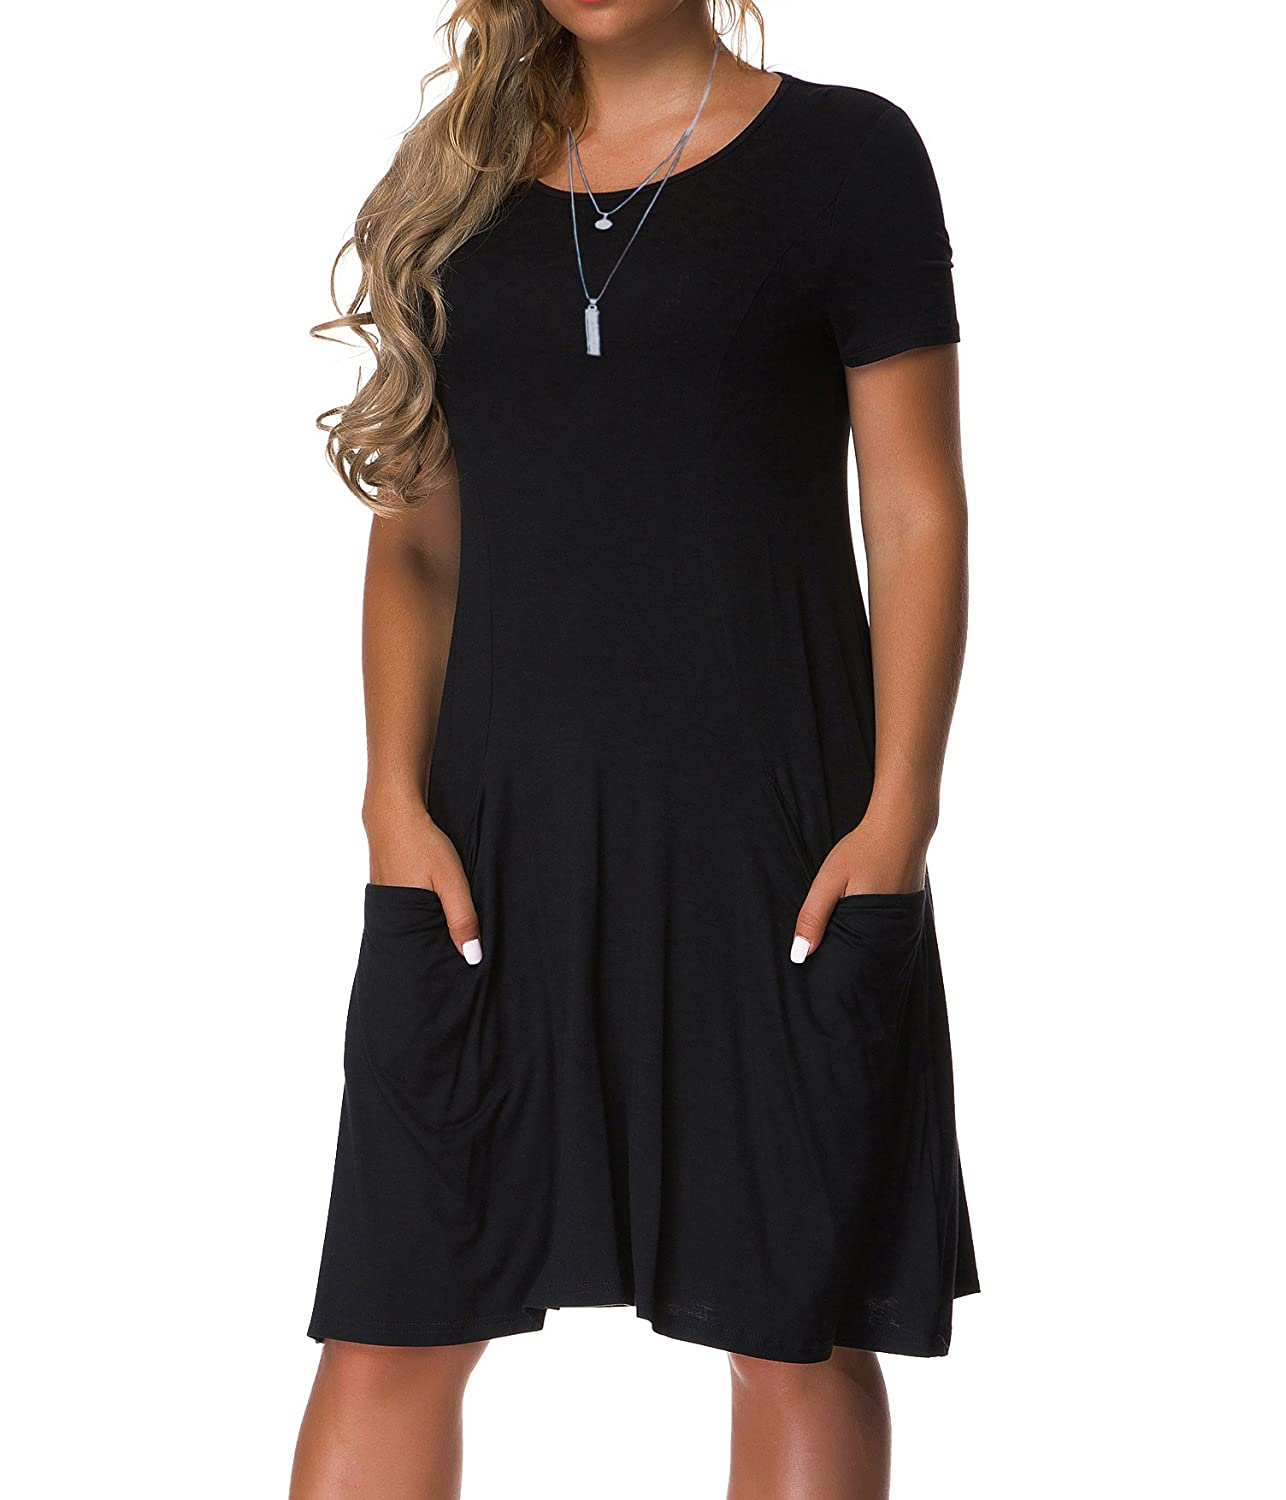 9679a229eeb VOIANLIMO Women s Plus Size Casual Loose T Shirt Mini Dress with Pockets at  Amazon Women s Clothing store